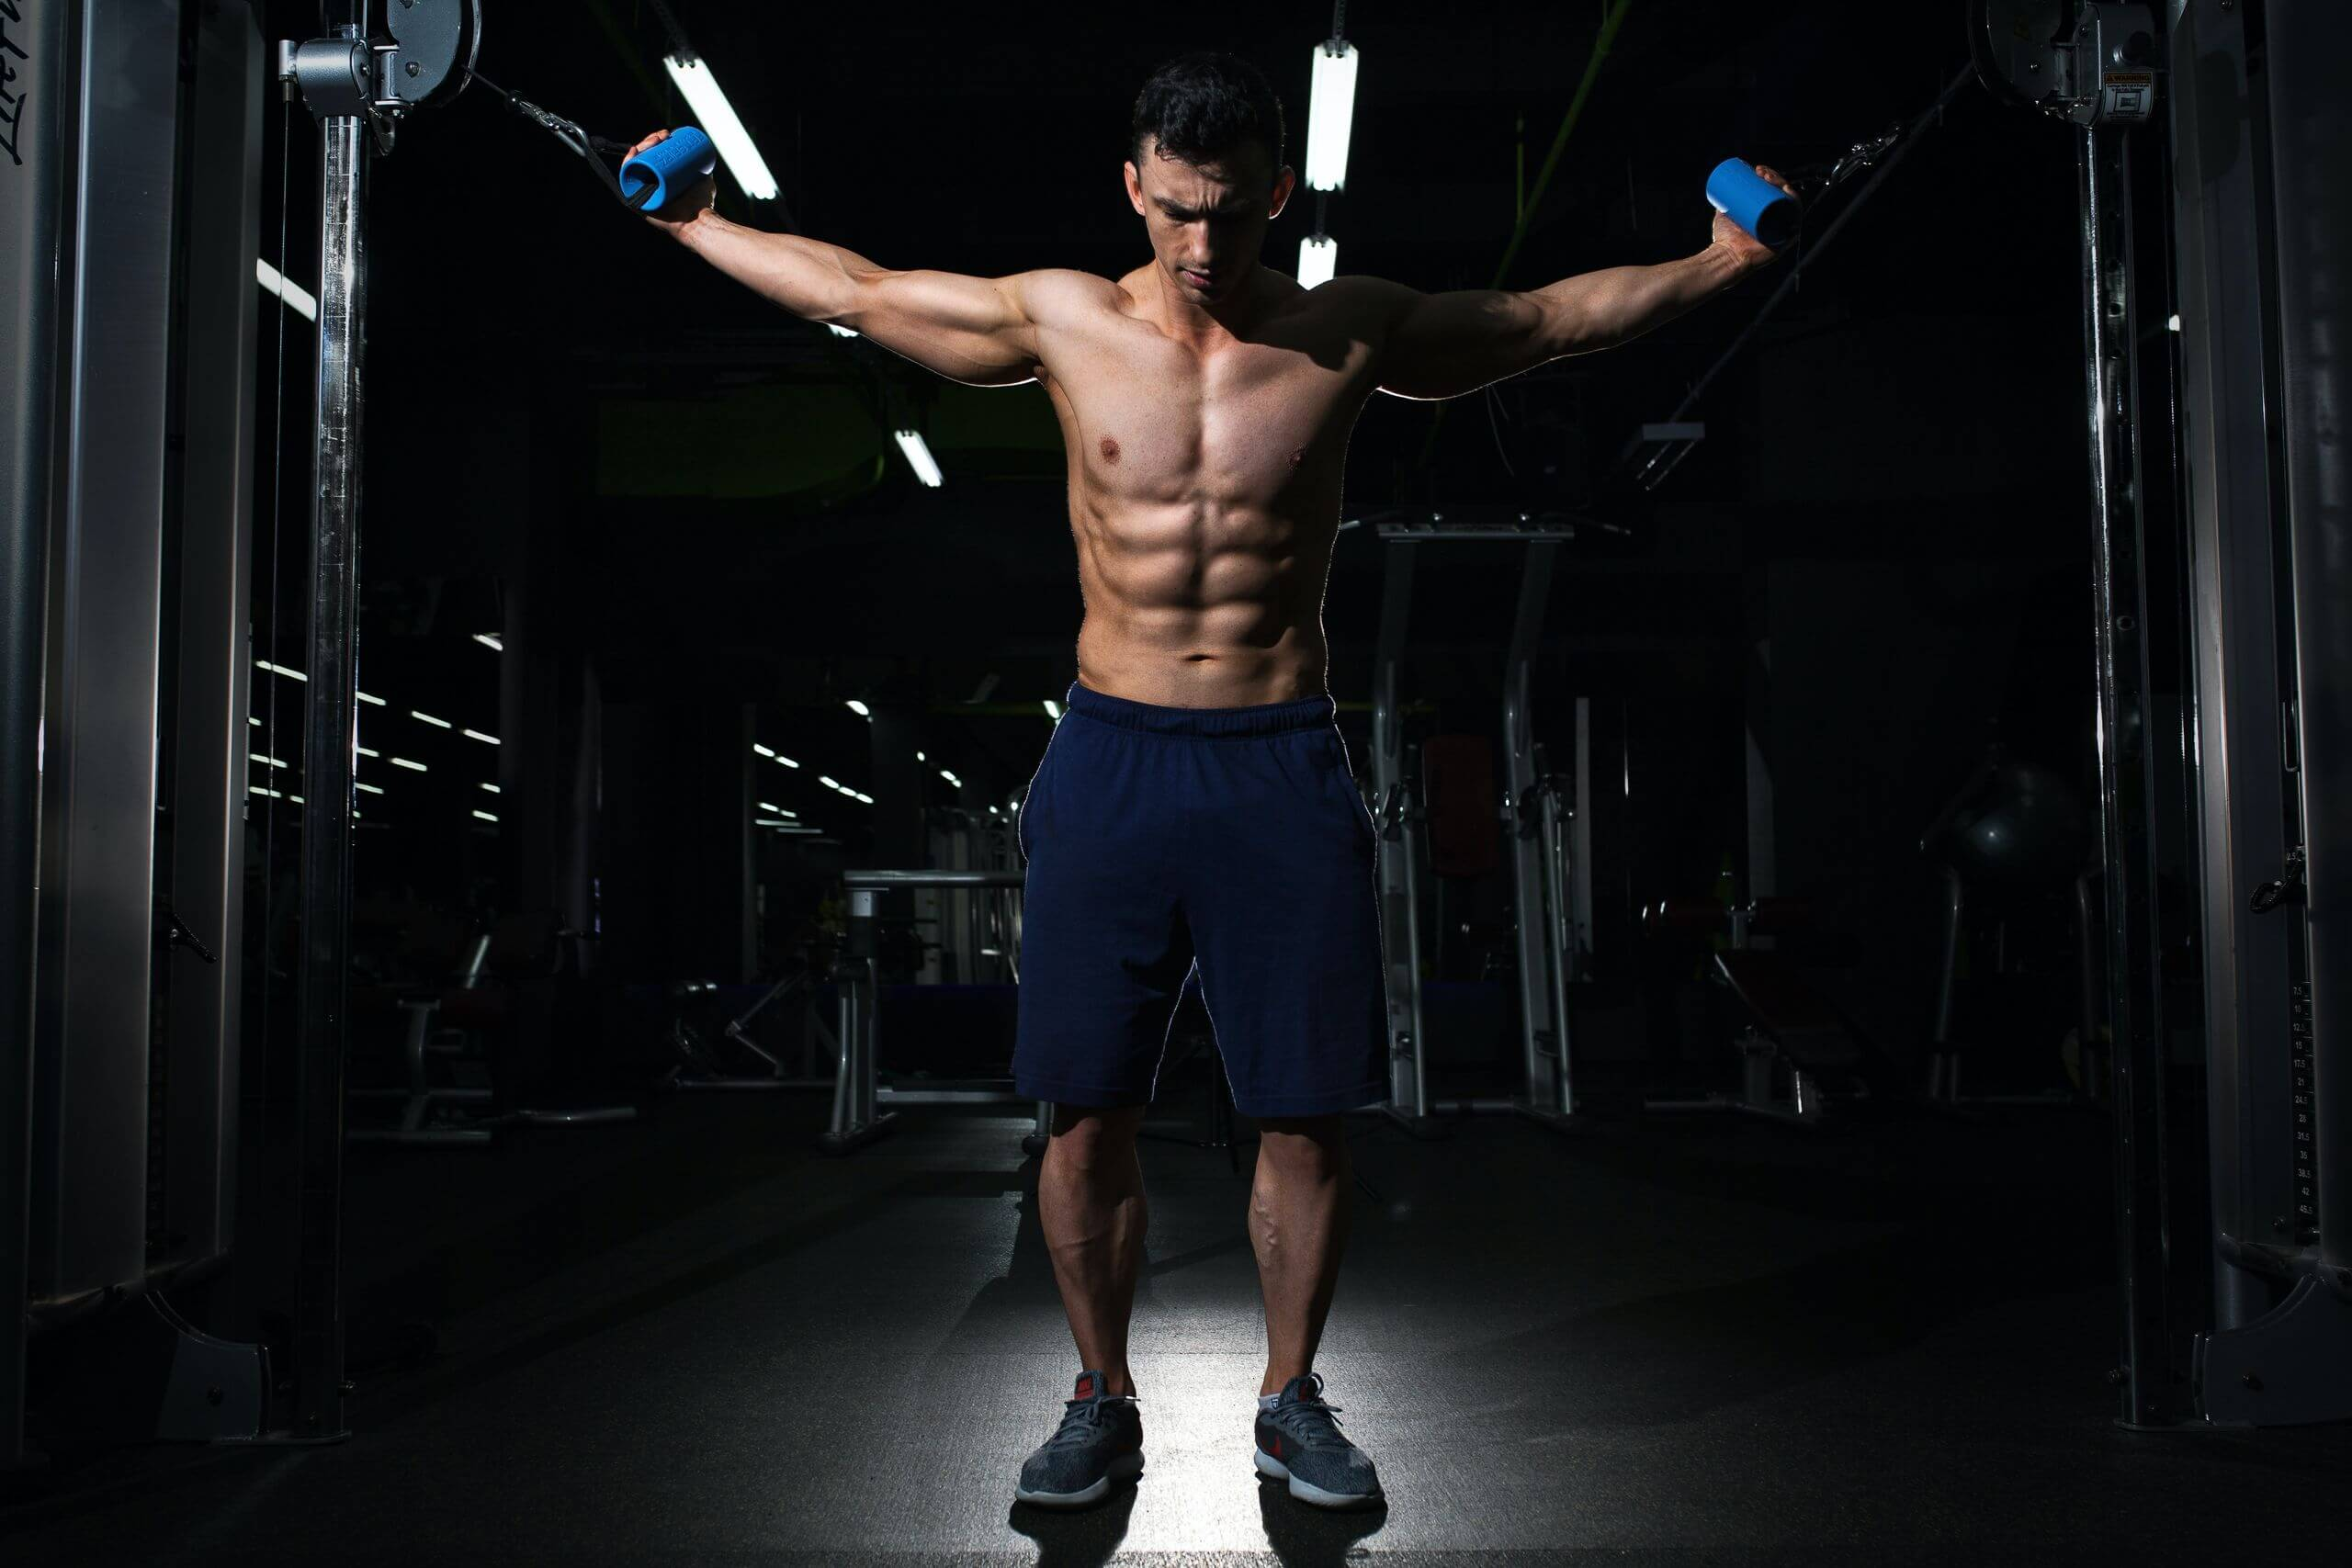 Man is training chest on crossover machine